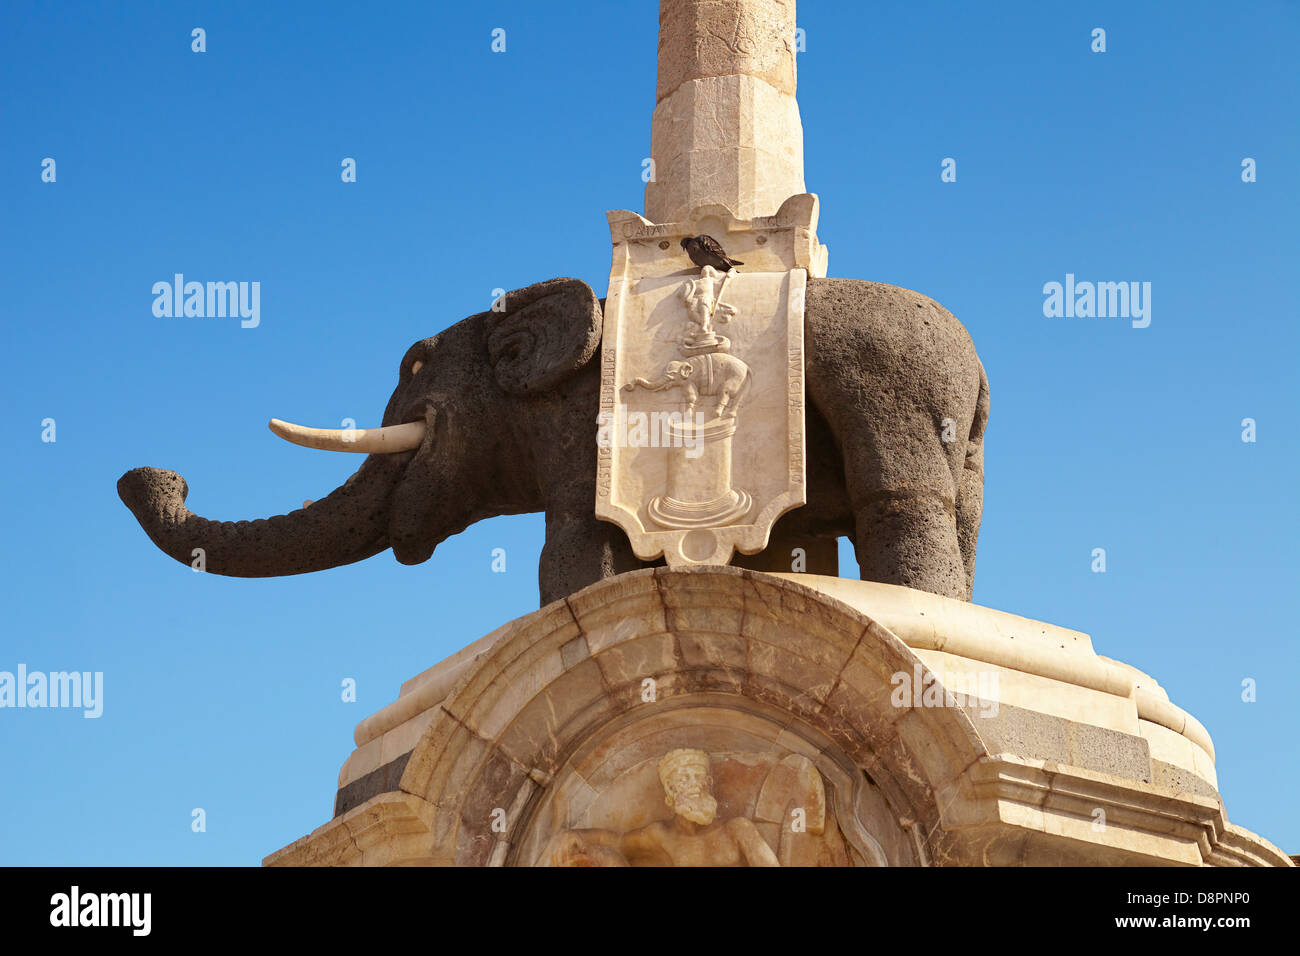 Detail of the the elephant fountain (lava elephant and Egyptian obelisk), Piazza Duomo, Catania, Sicily, Italy - Stock Image